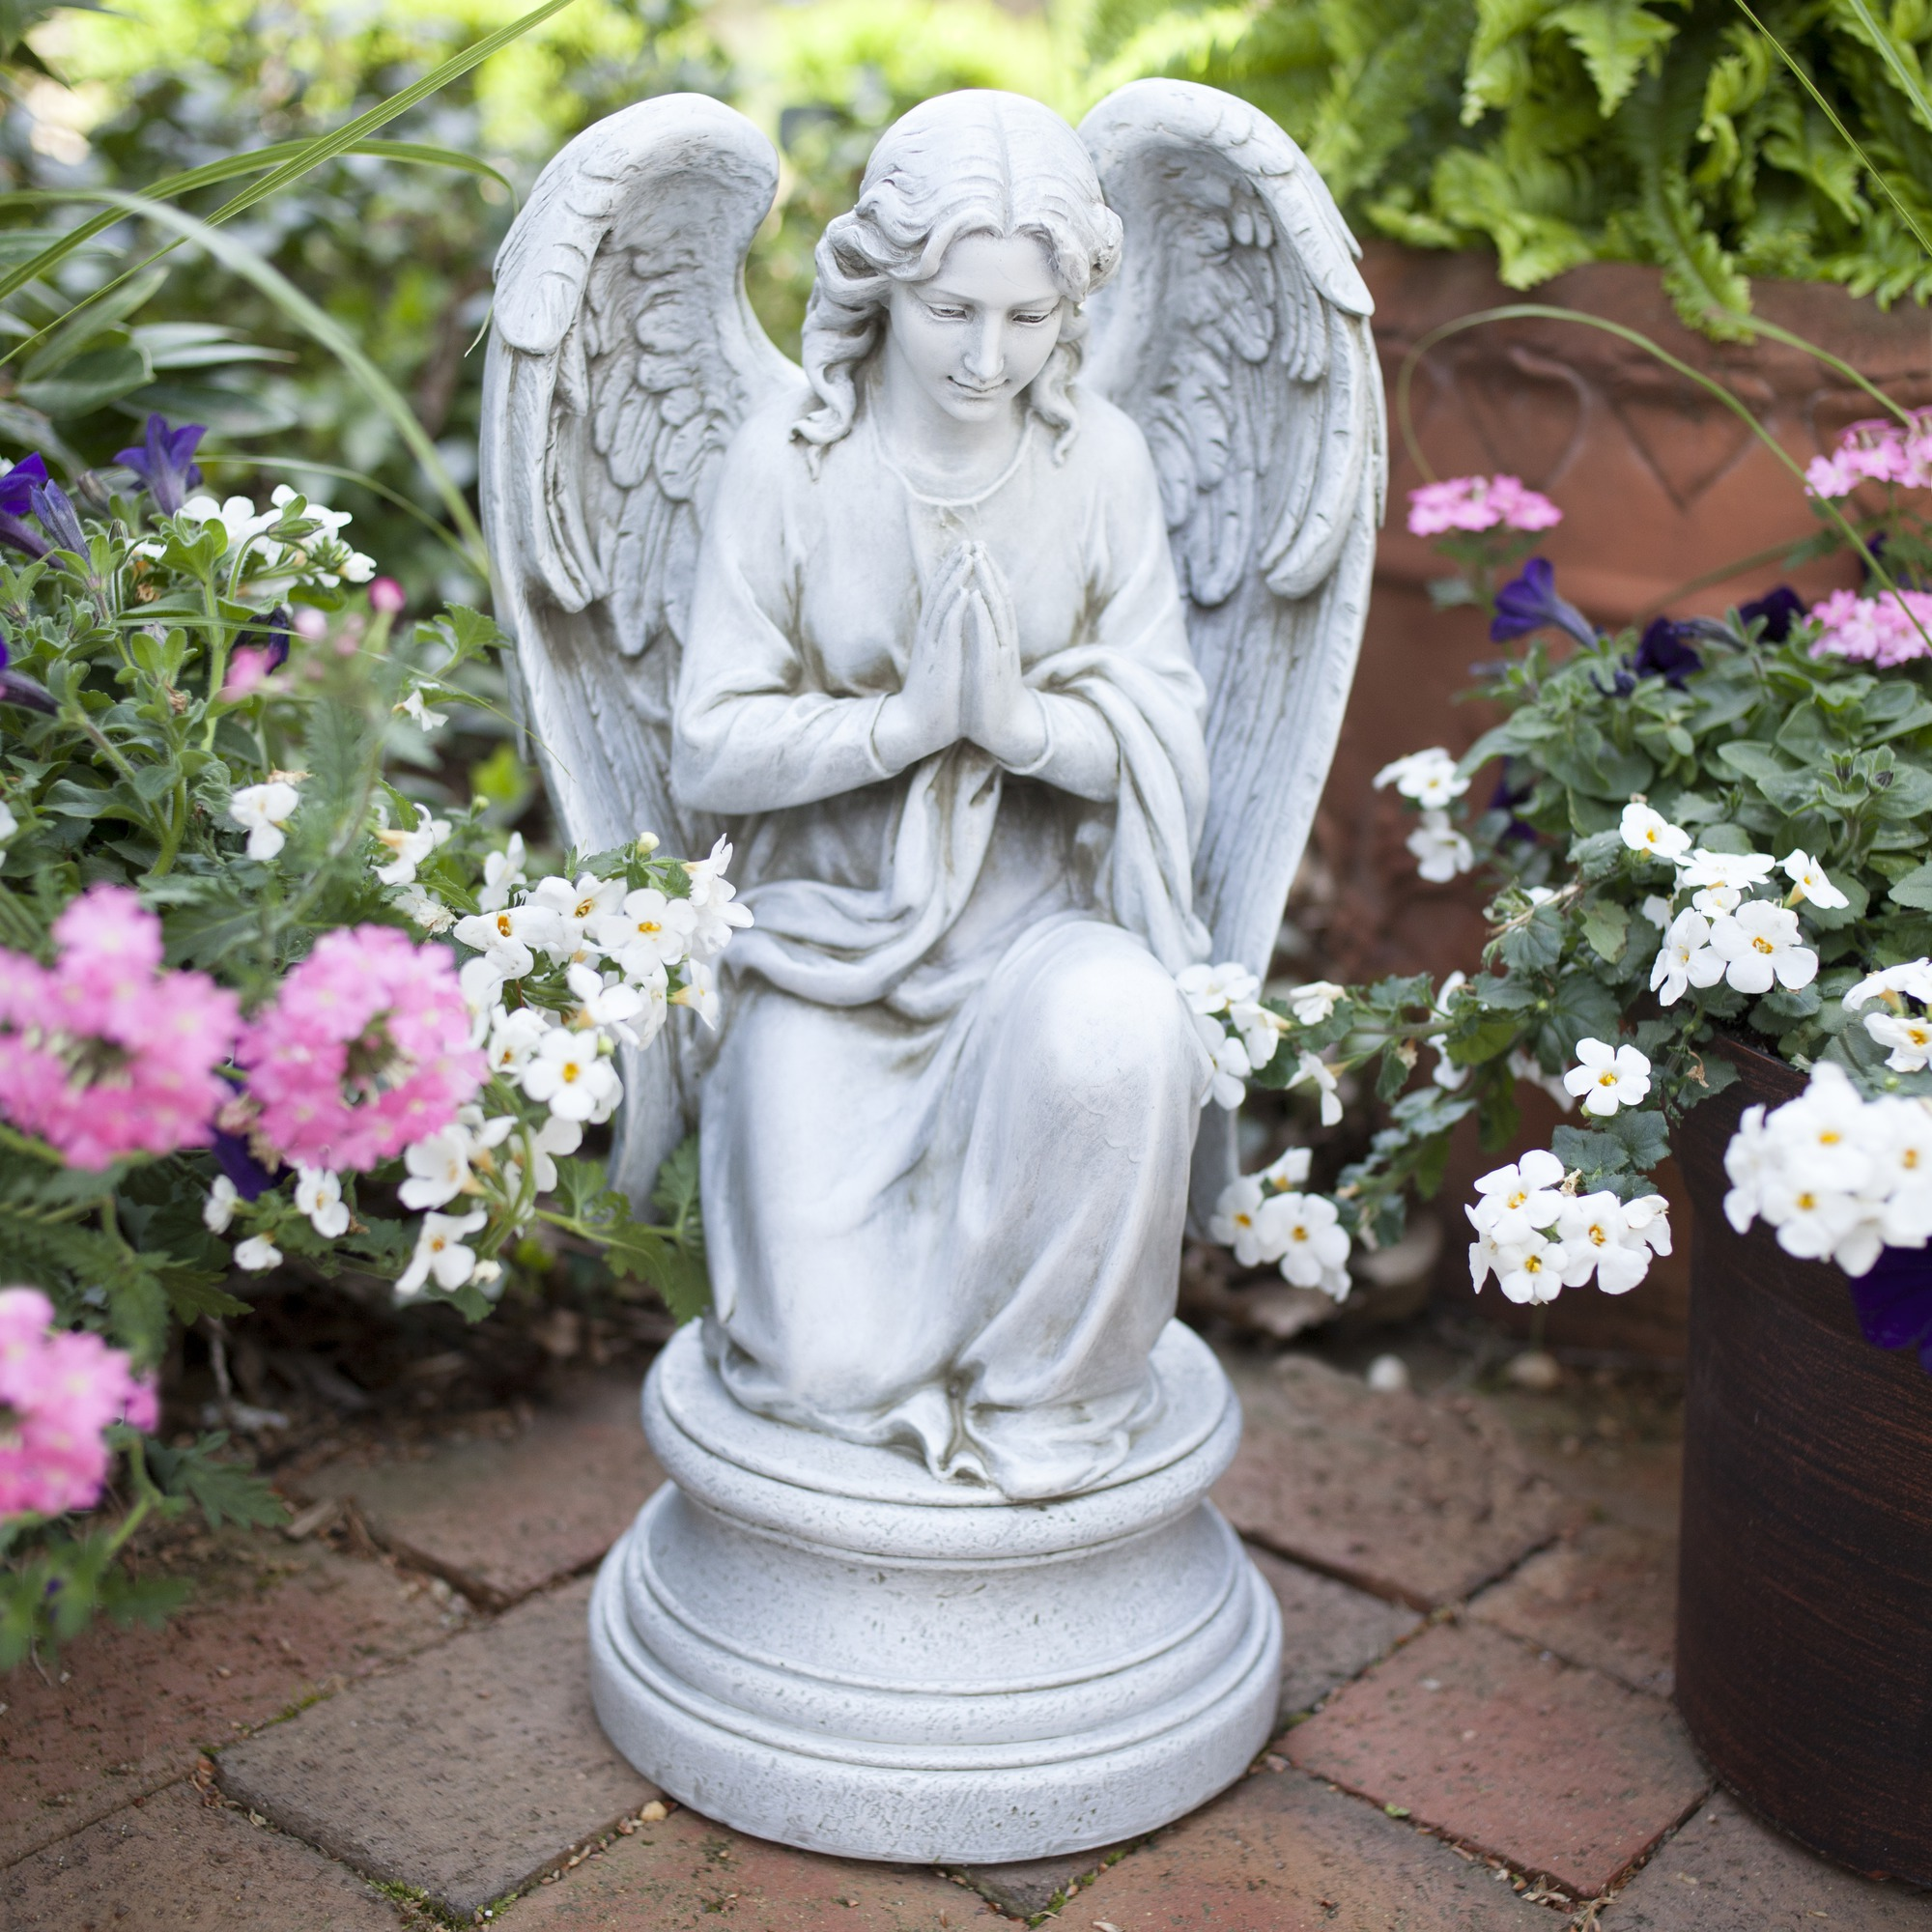 KneelingPraying Guardian Angel Outdoor Statue The Catholic Company